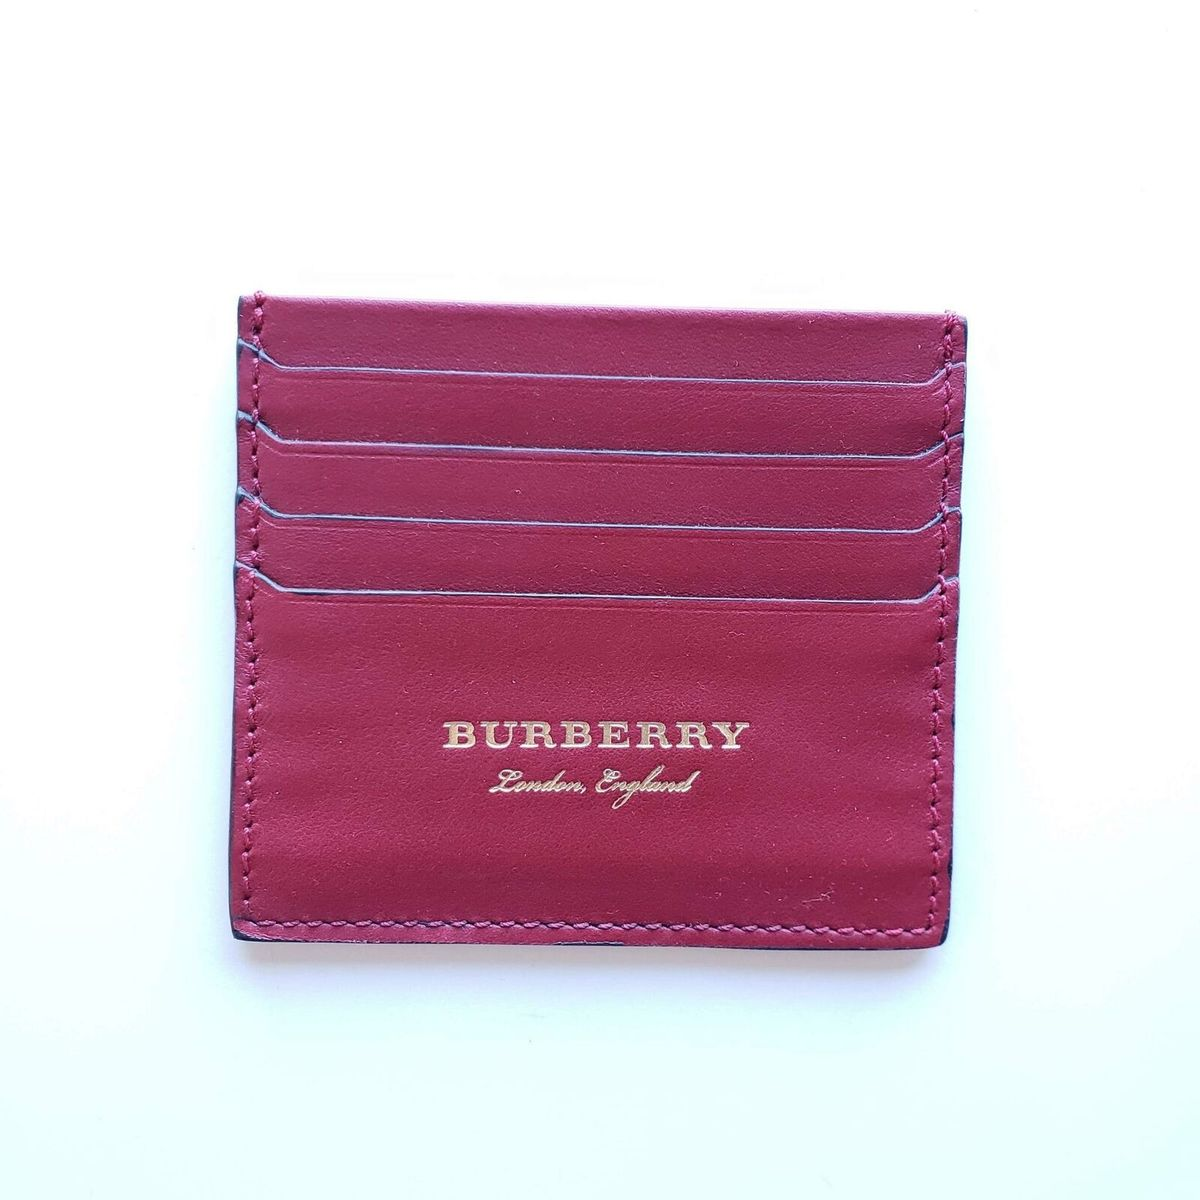 Burberry バーバリー レザーカードケース カードホルダー 財布 レッド Leather Card Case Cardholder Wallet Red